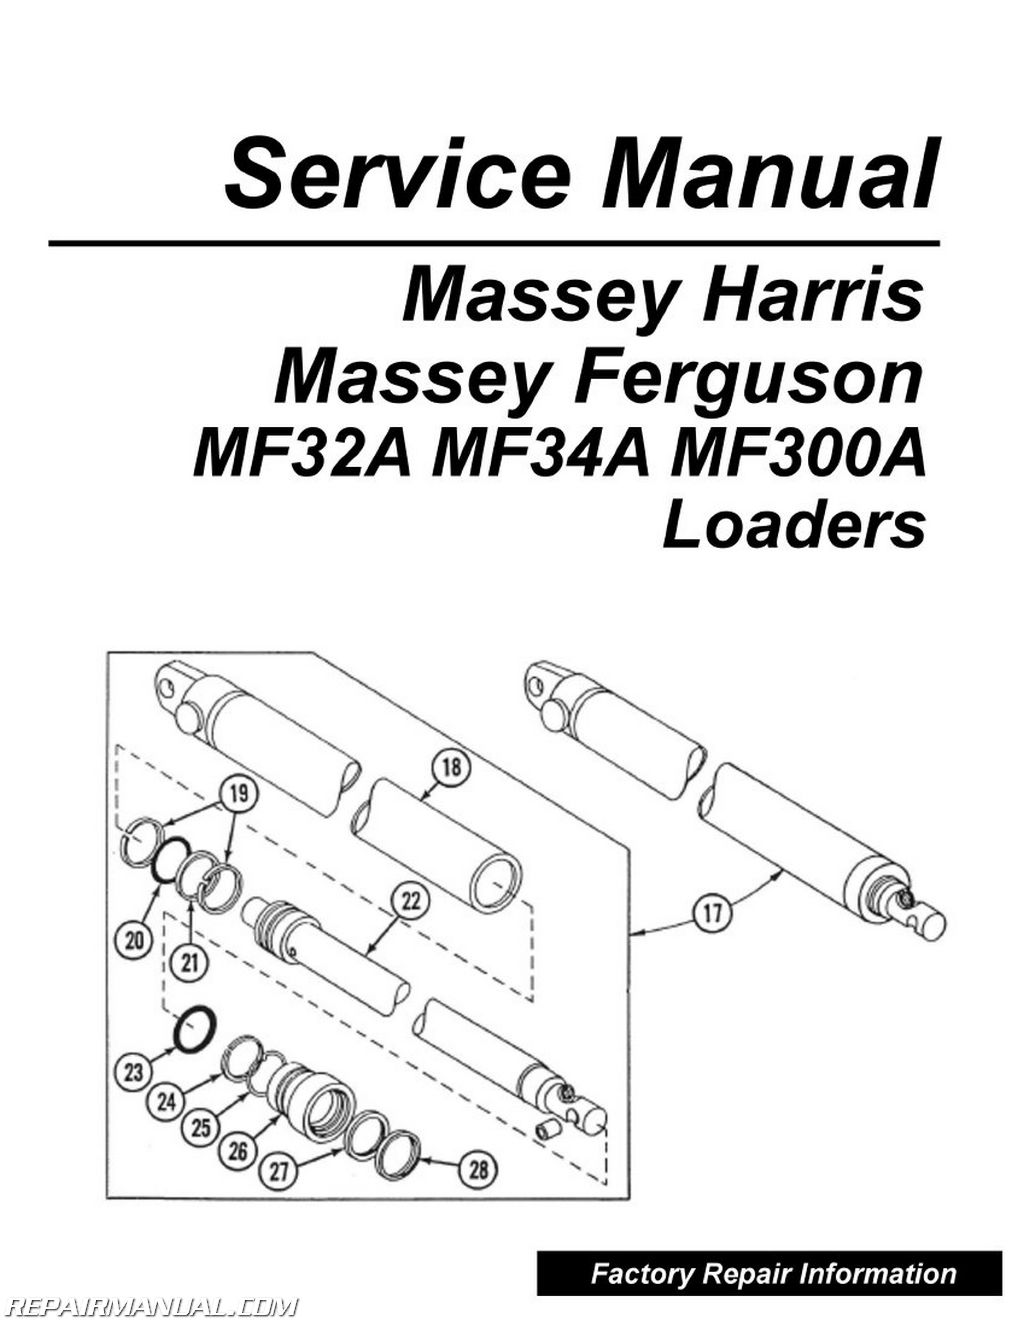 Massey Ferguson 32 Loader Parts : Massey ferguson model mf a loader service manual